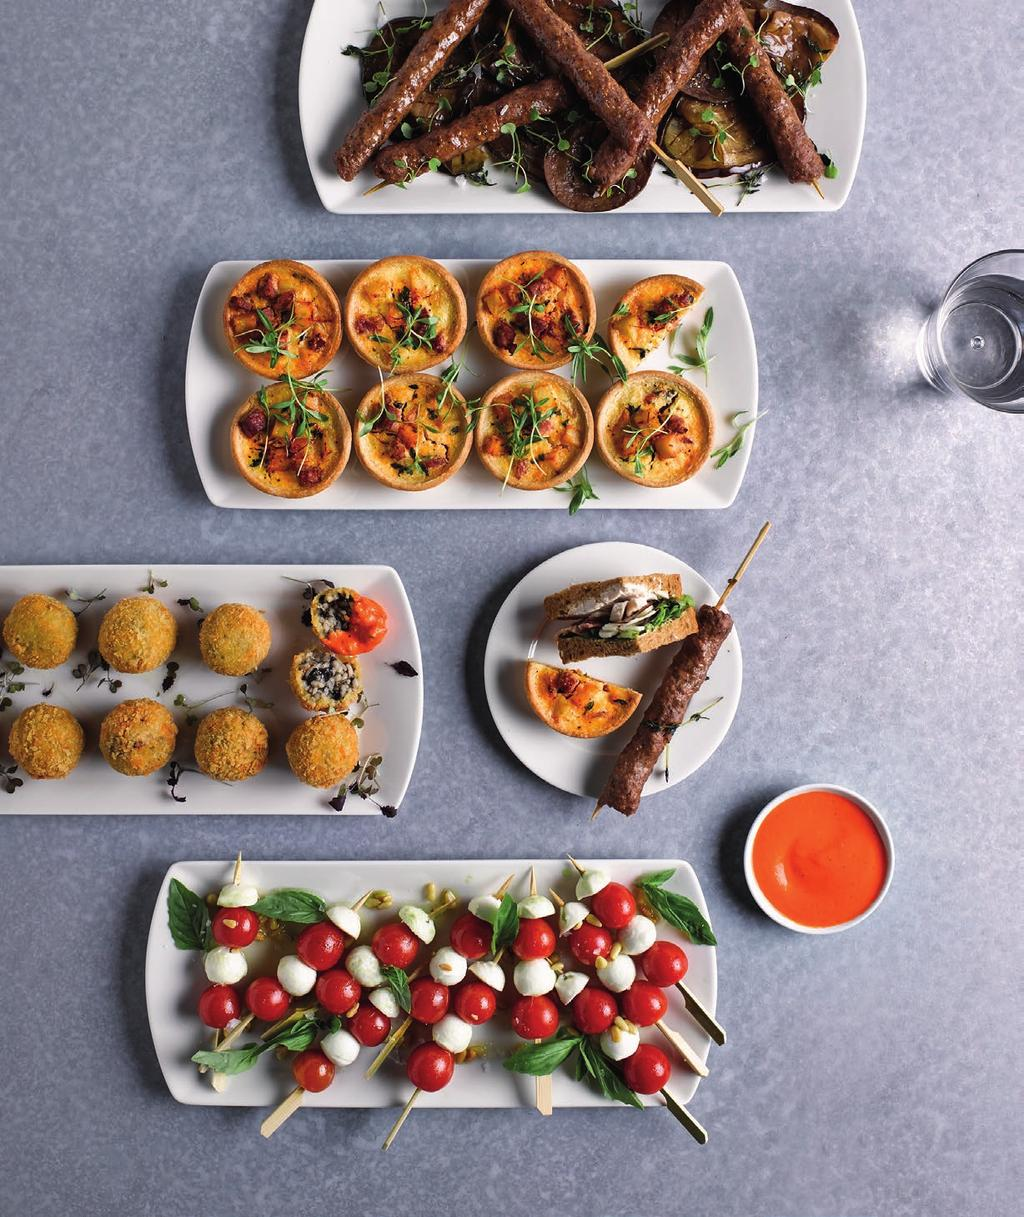 FINGER FOOD PREMIUM SANDWICH PLATTERS SERVED ALONGSIDE YOUR CHOICE OF TWO HOT AND TWO COLD DISHES FOR GUESTS TO HELP THEMSELVES; PERFECT FOR INFORMAL LUNCHES.